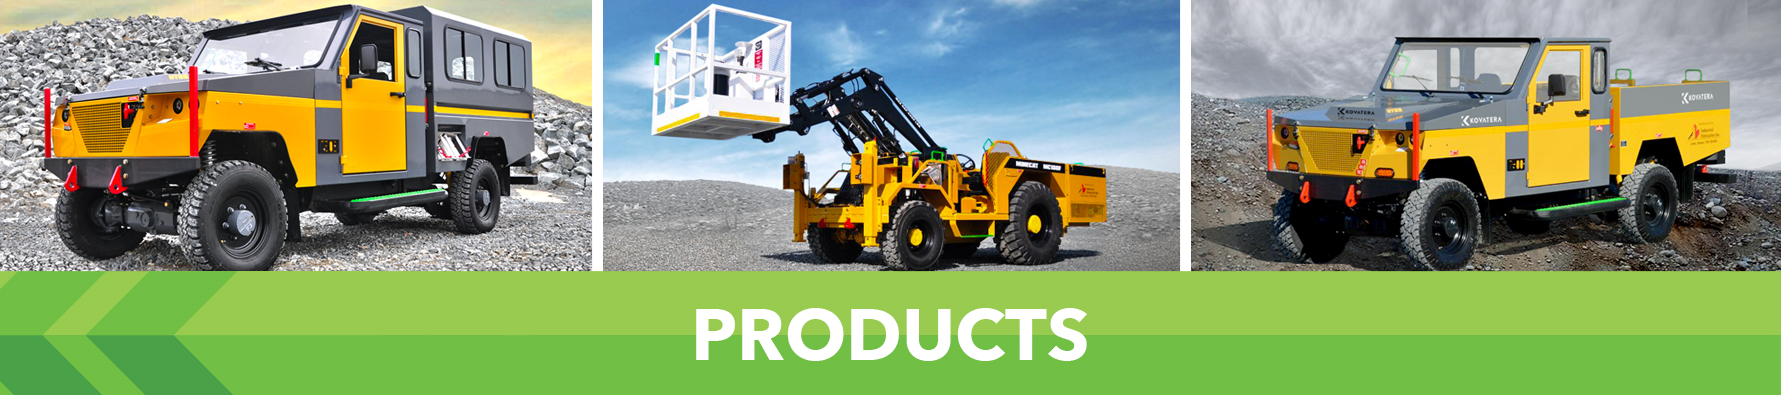 MINECAT Electric and Diesel Utility Products Banner